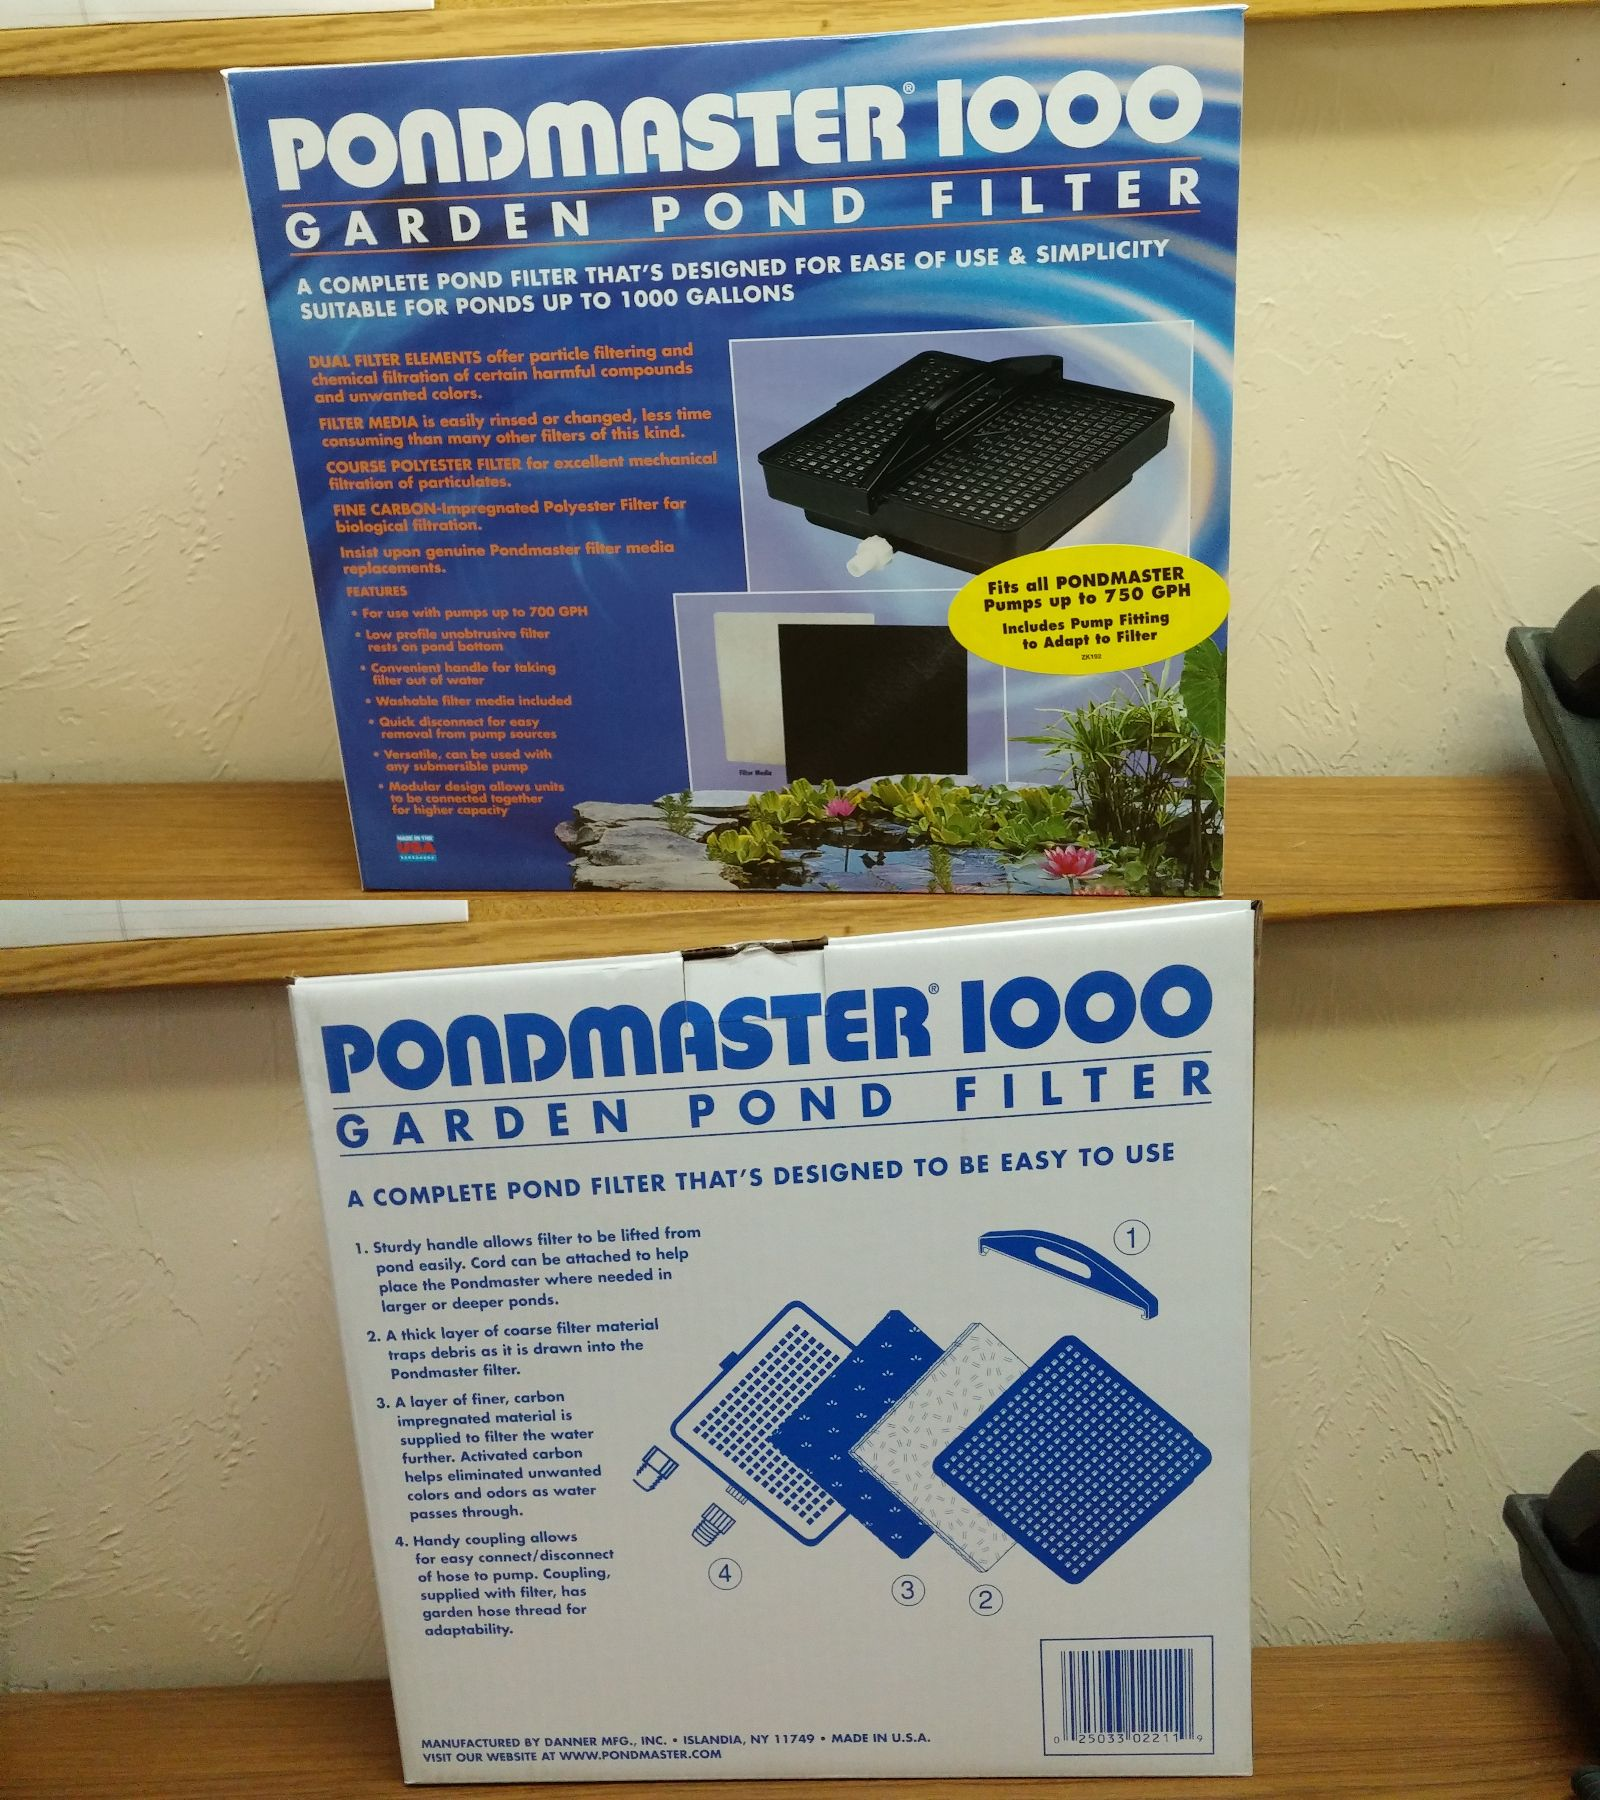 Fish Pond Supplies 134750 Pondmaster Garden Pond Filter Up To 1000 Gallons Buy It Now Only 39 89 On Ebay Supplies Pond Filters Pond Filters